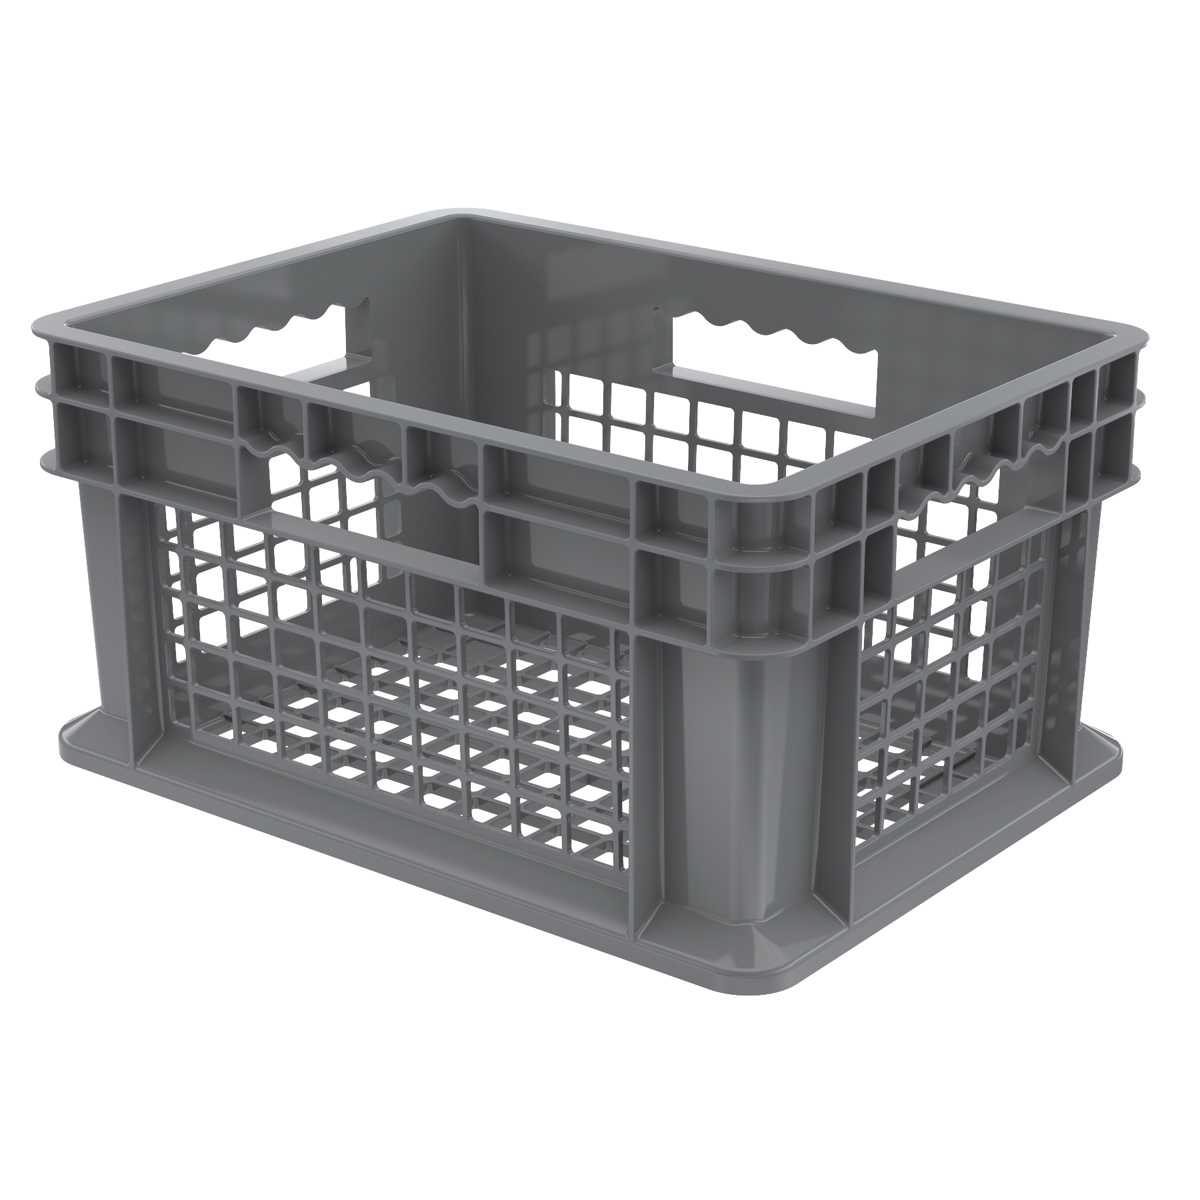 Straight Wall Container, Mesh 15-3/4 x 11-3/4 x 8-1/4, Gray (37208GREY).  This item sold in carton quantities of 12.